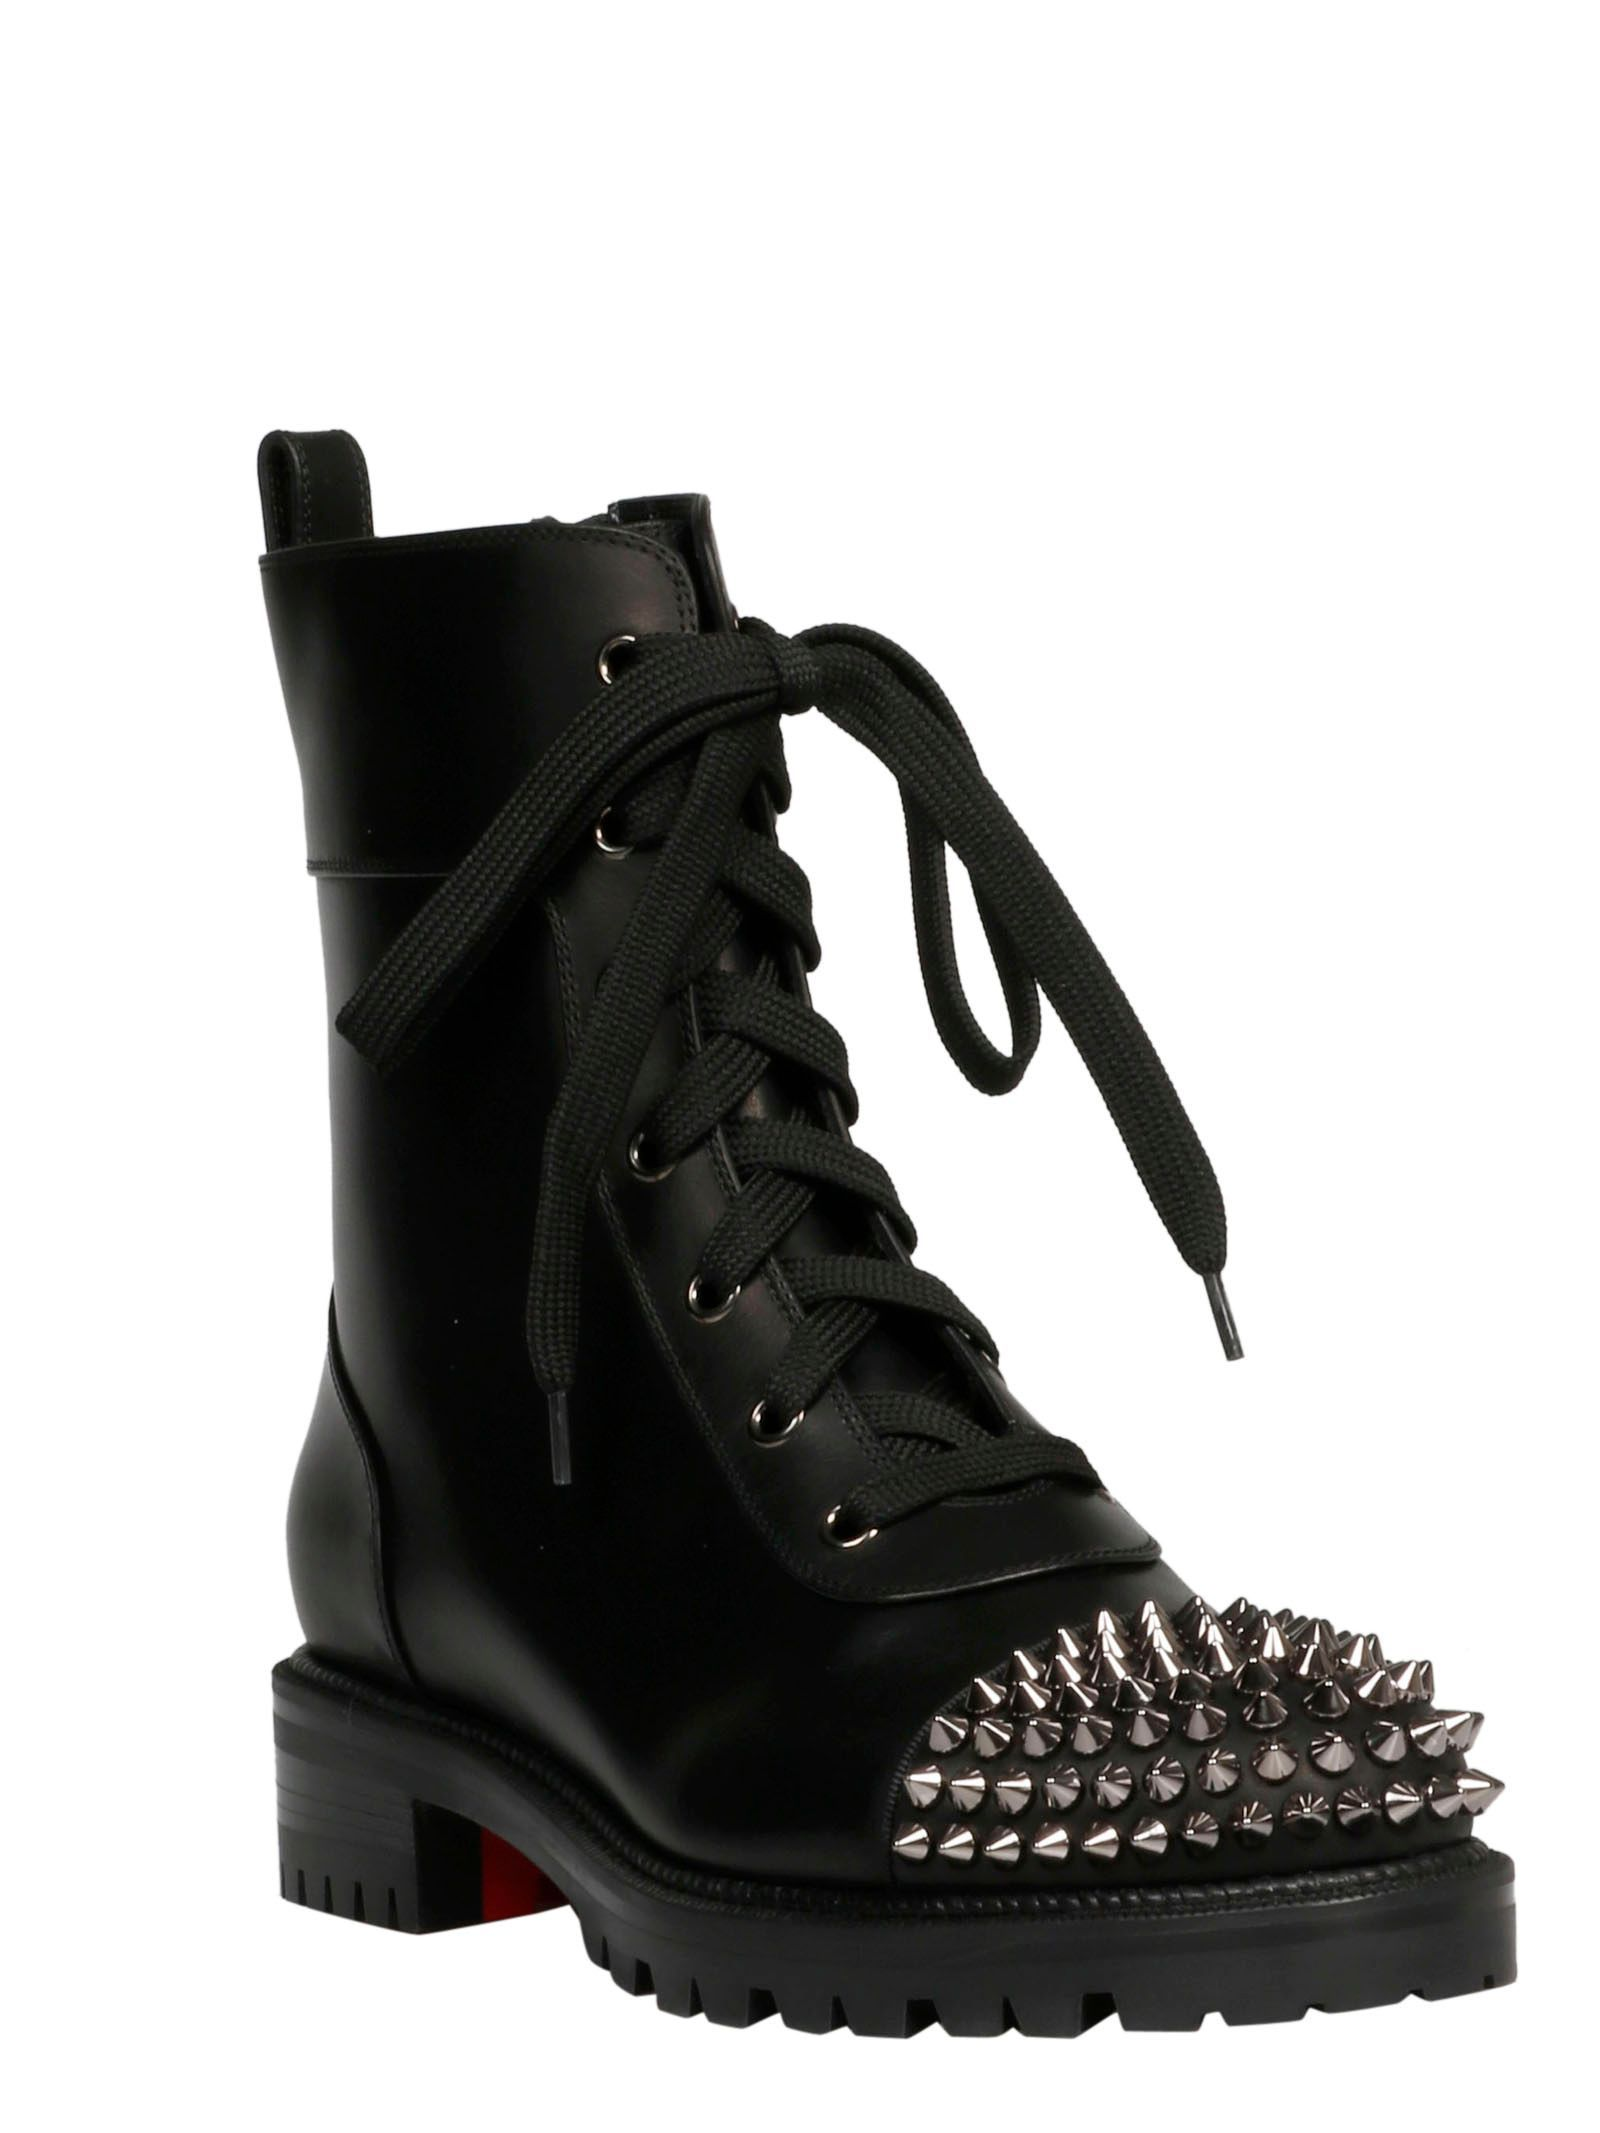 CHRISTIAN LOUBOUTIN WOMEN'S 3190955CM47 BLACK LEATHER ANKLE BOOTS